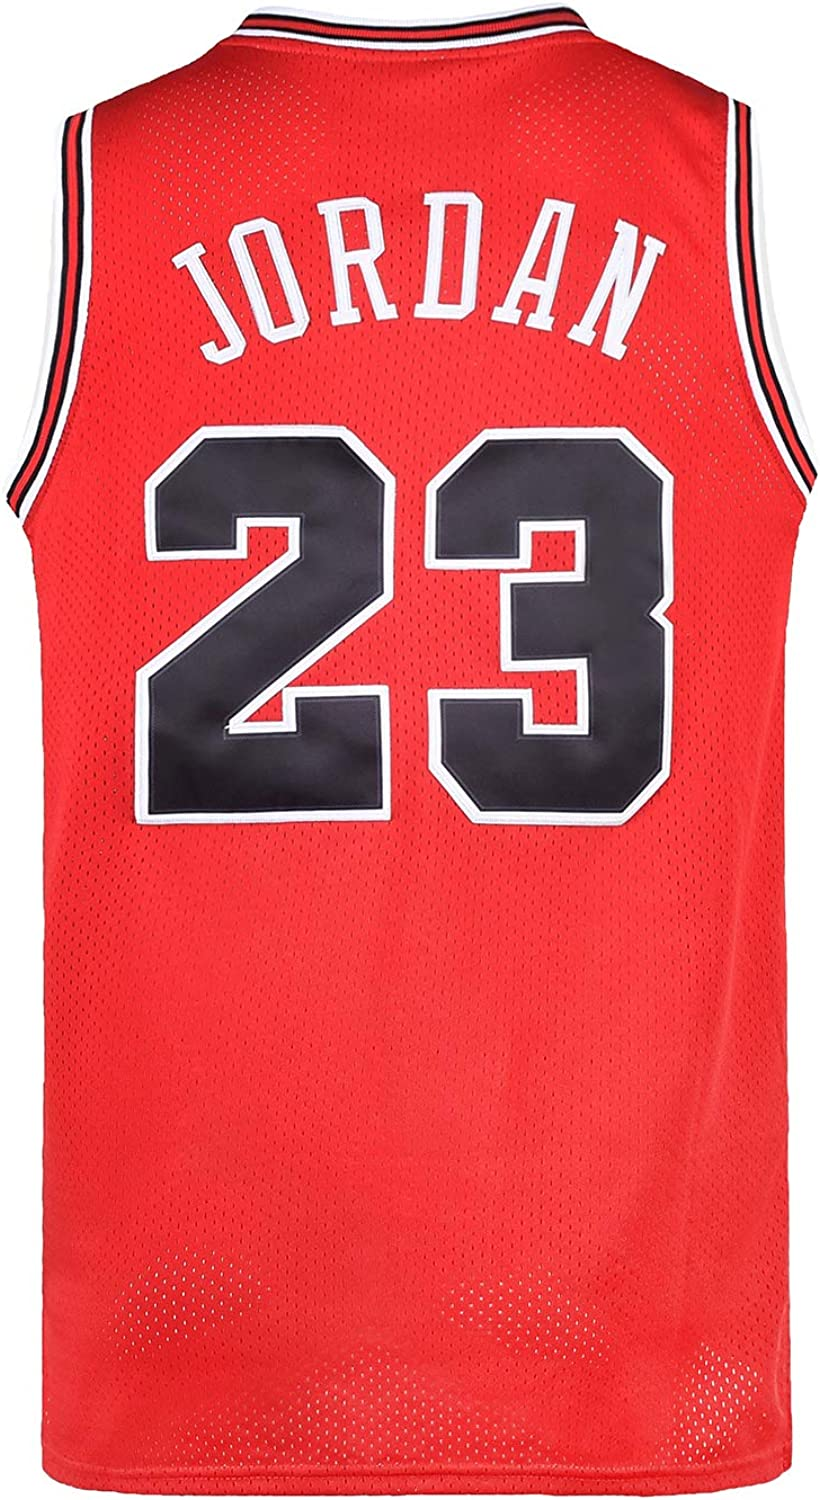 OKnown Mens 23# Space Retro Jersey Basketball Jersey White/Black/Red S-3XL